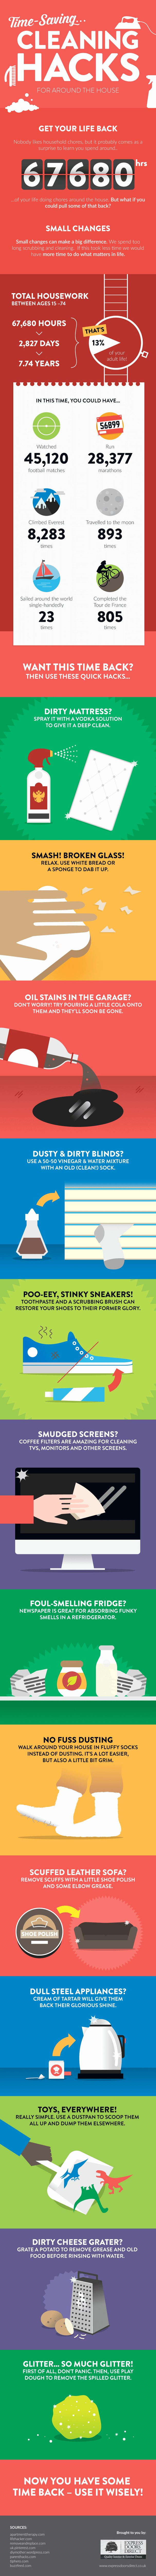 Homeowners spend about 67K hours doing chores! These #cleaning #hacks can help. #infographic